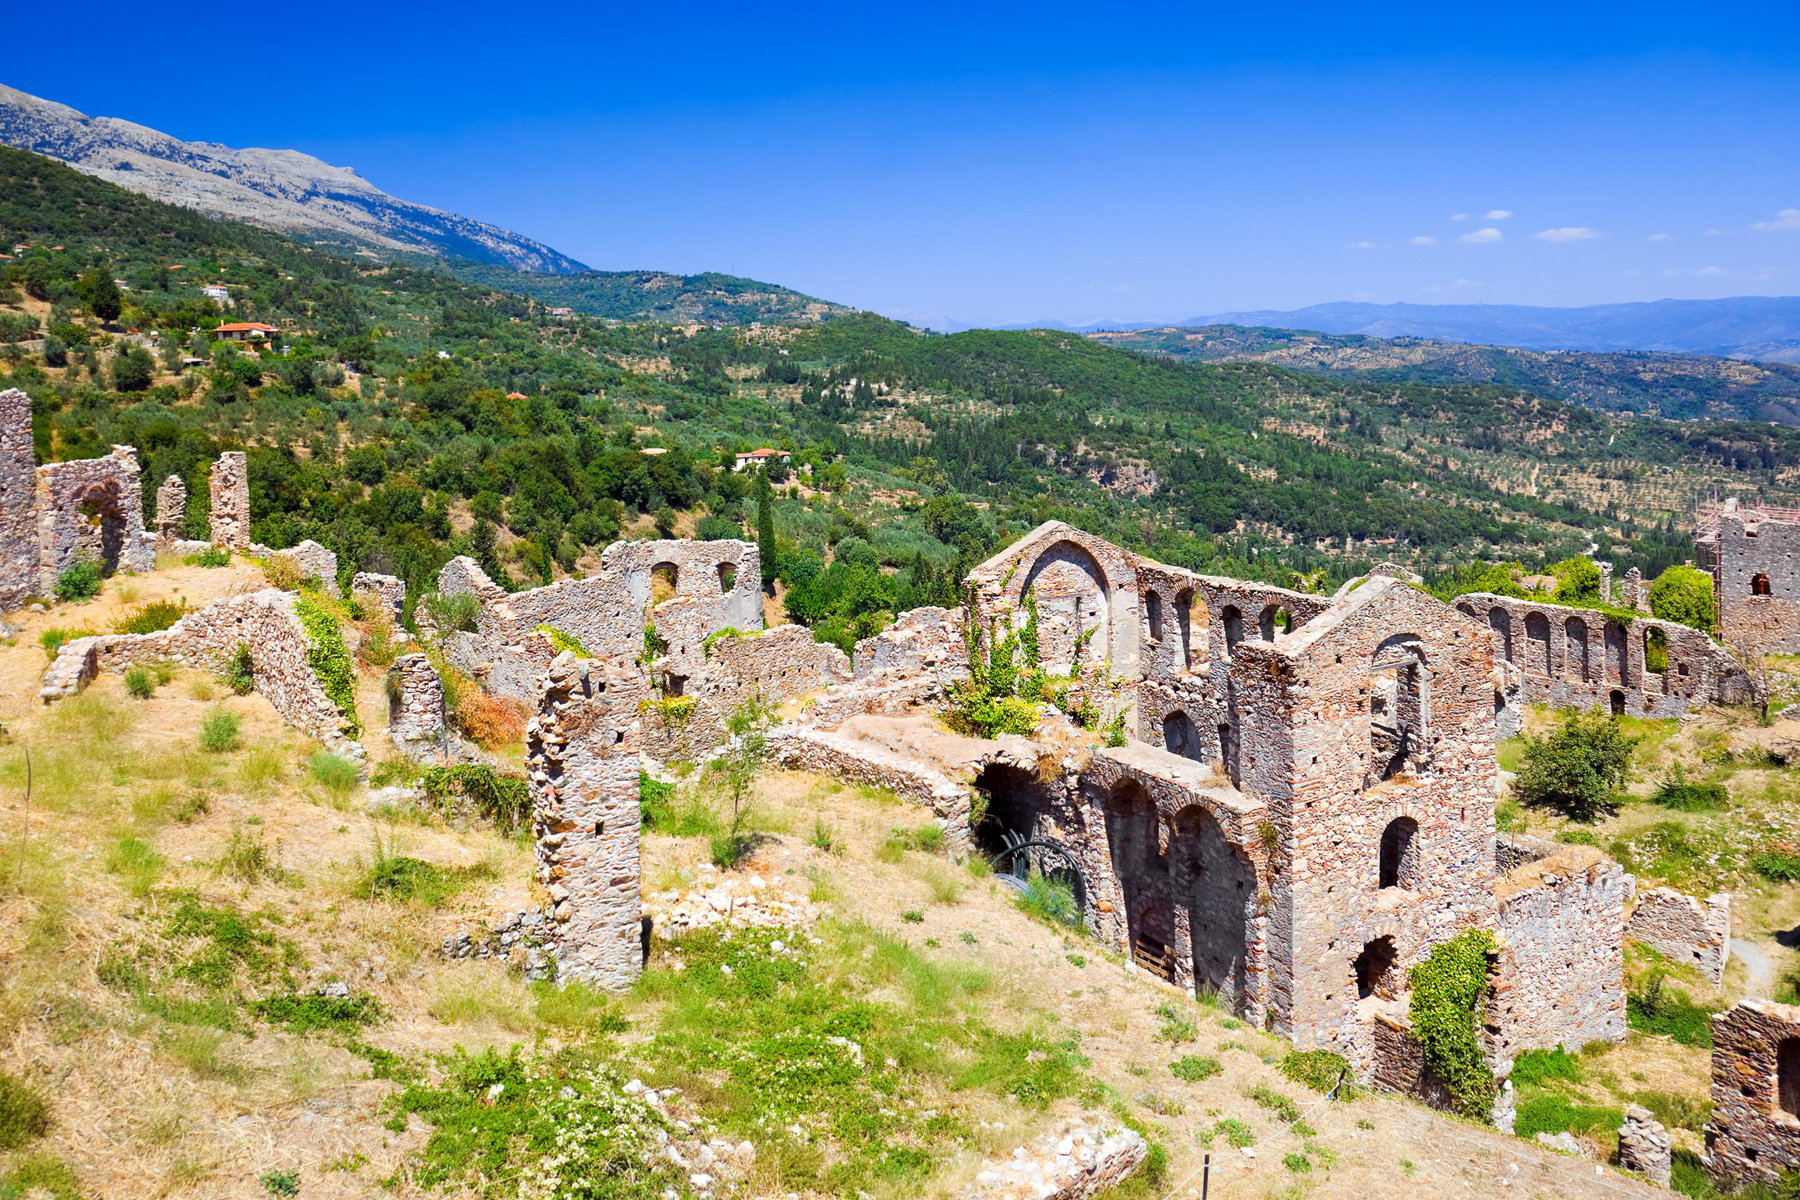 Discover Montenegro, Albania and Greece in 15 days. Tour from Tivat to Athens. Medieval towns and monasteries of Montenegro, ancient places and fortresses and beaches of Greece.